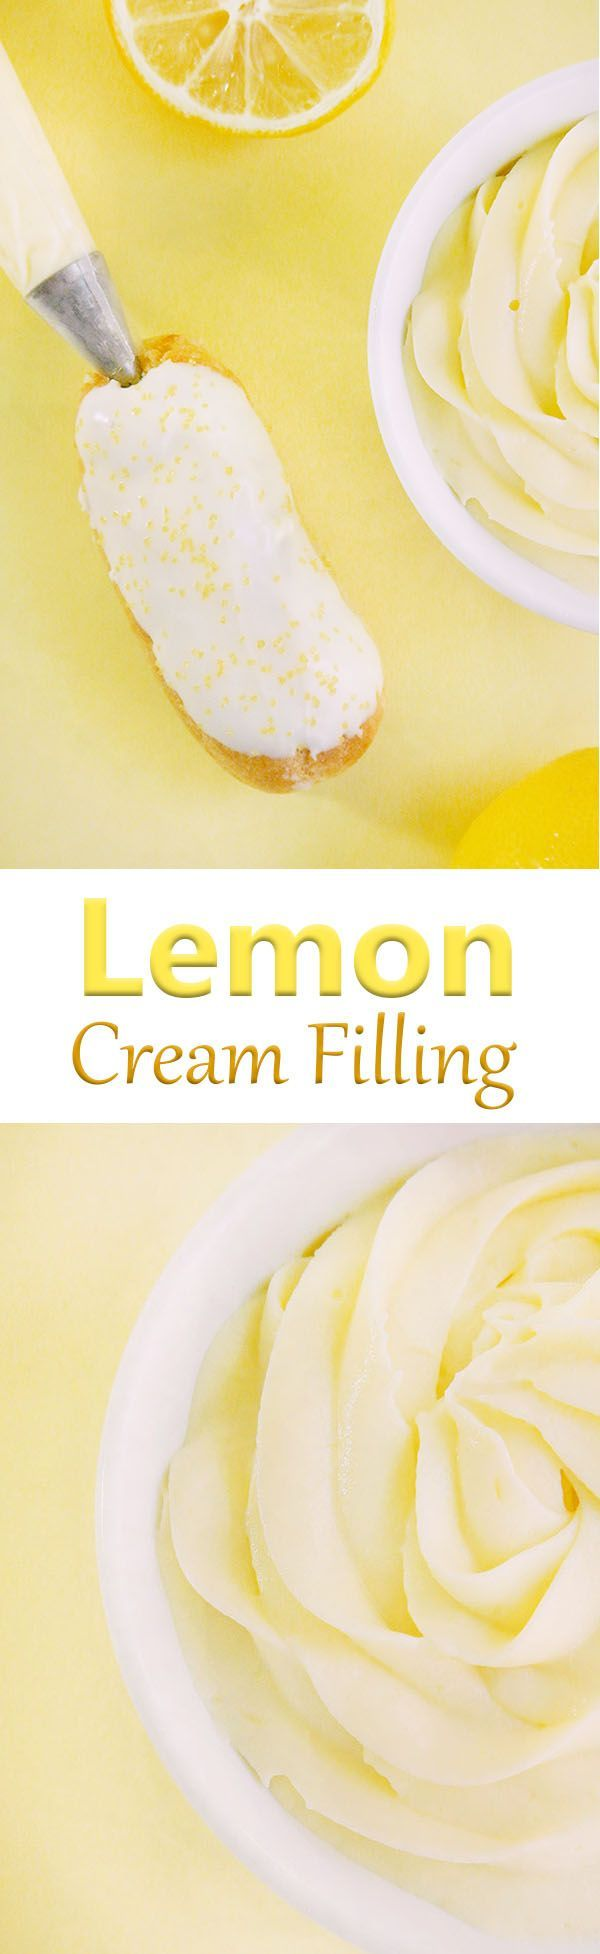 Lemon cream filling for pies, cakes, cupcakes, éclairs, trifles, doughnuts, and more! Step by step photo tutorial included.